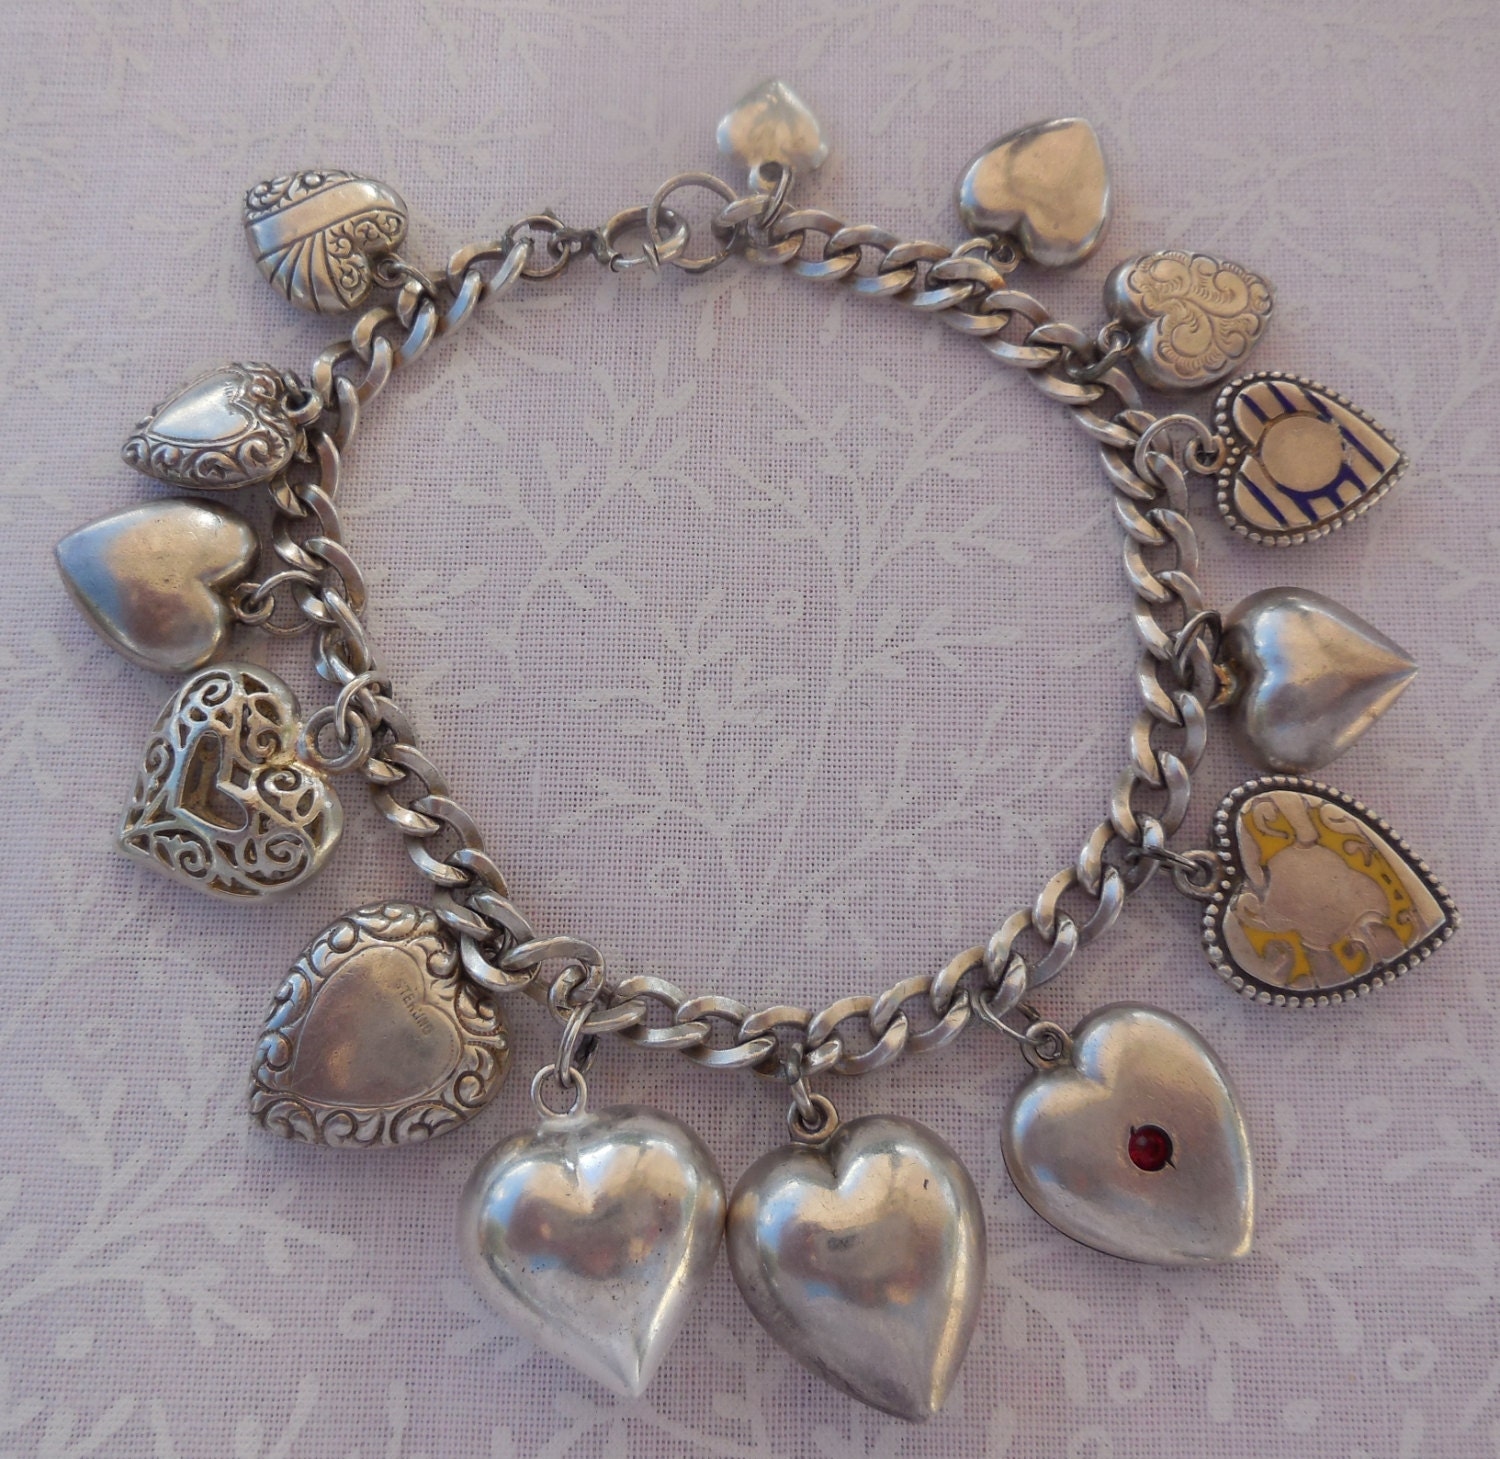 Bracelet With Hearts: Vintage Victorian Puffy Heart Charm Bracelet With 14 Heart